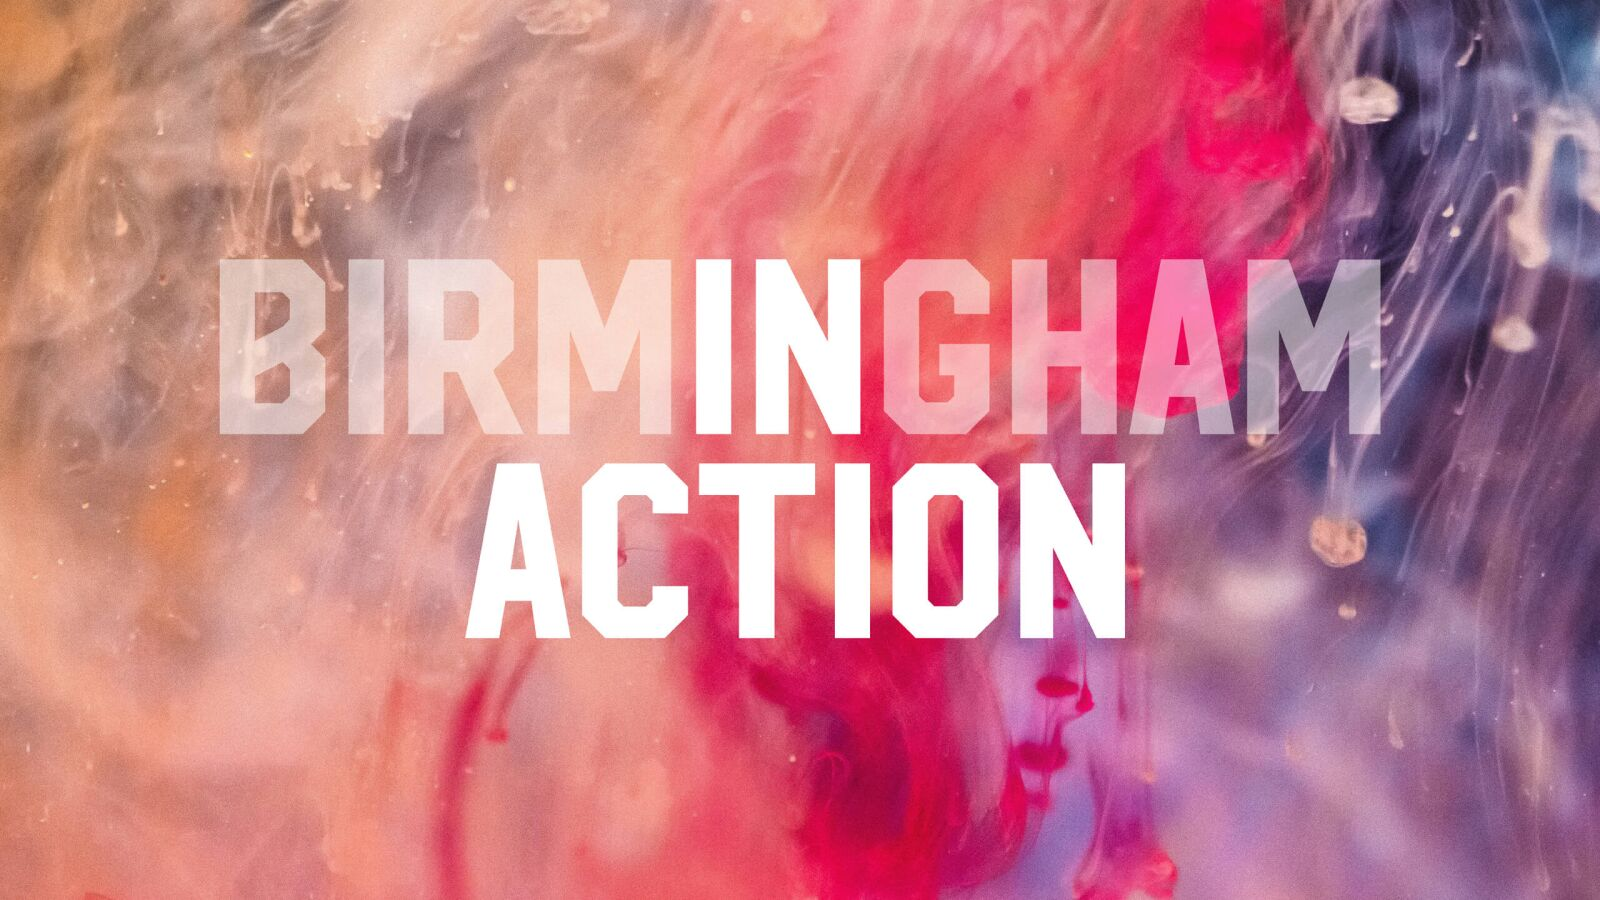 A campaign to spark action